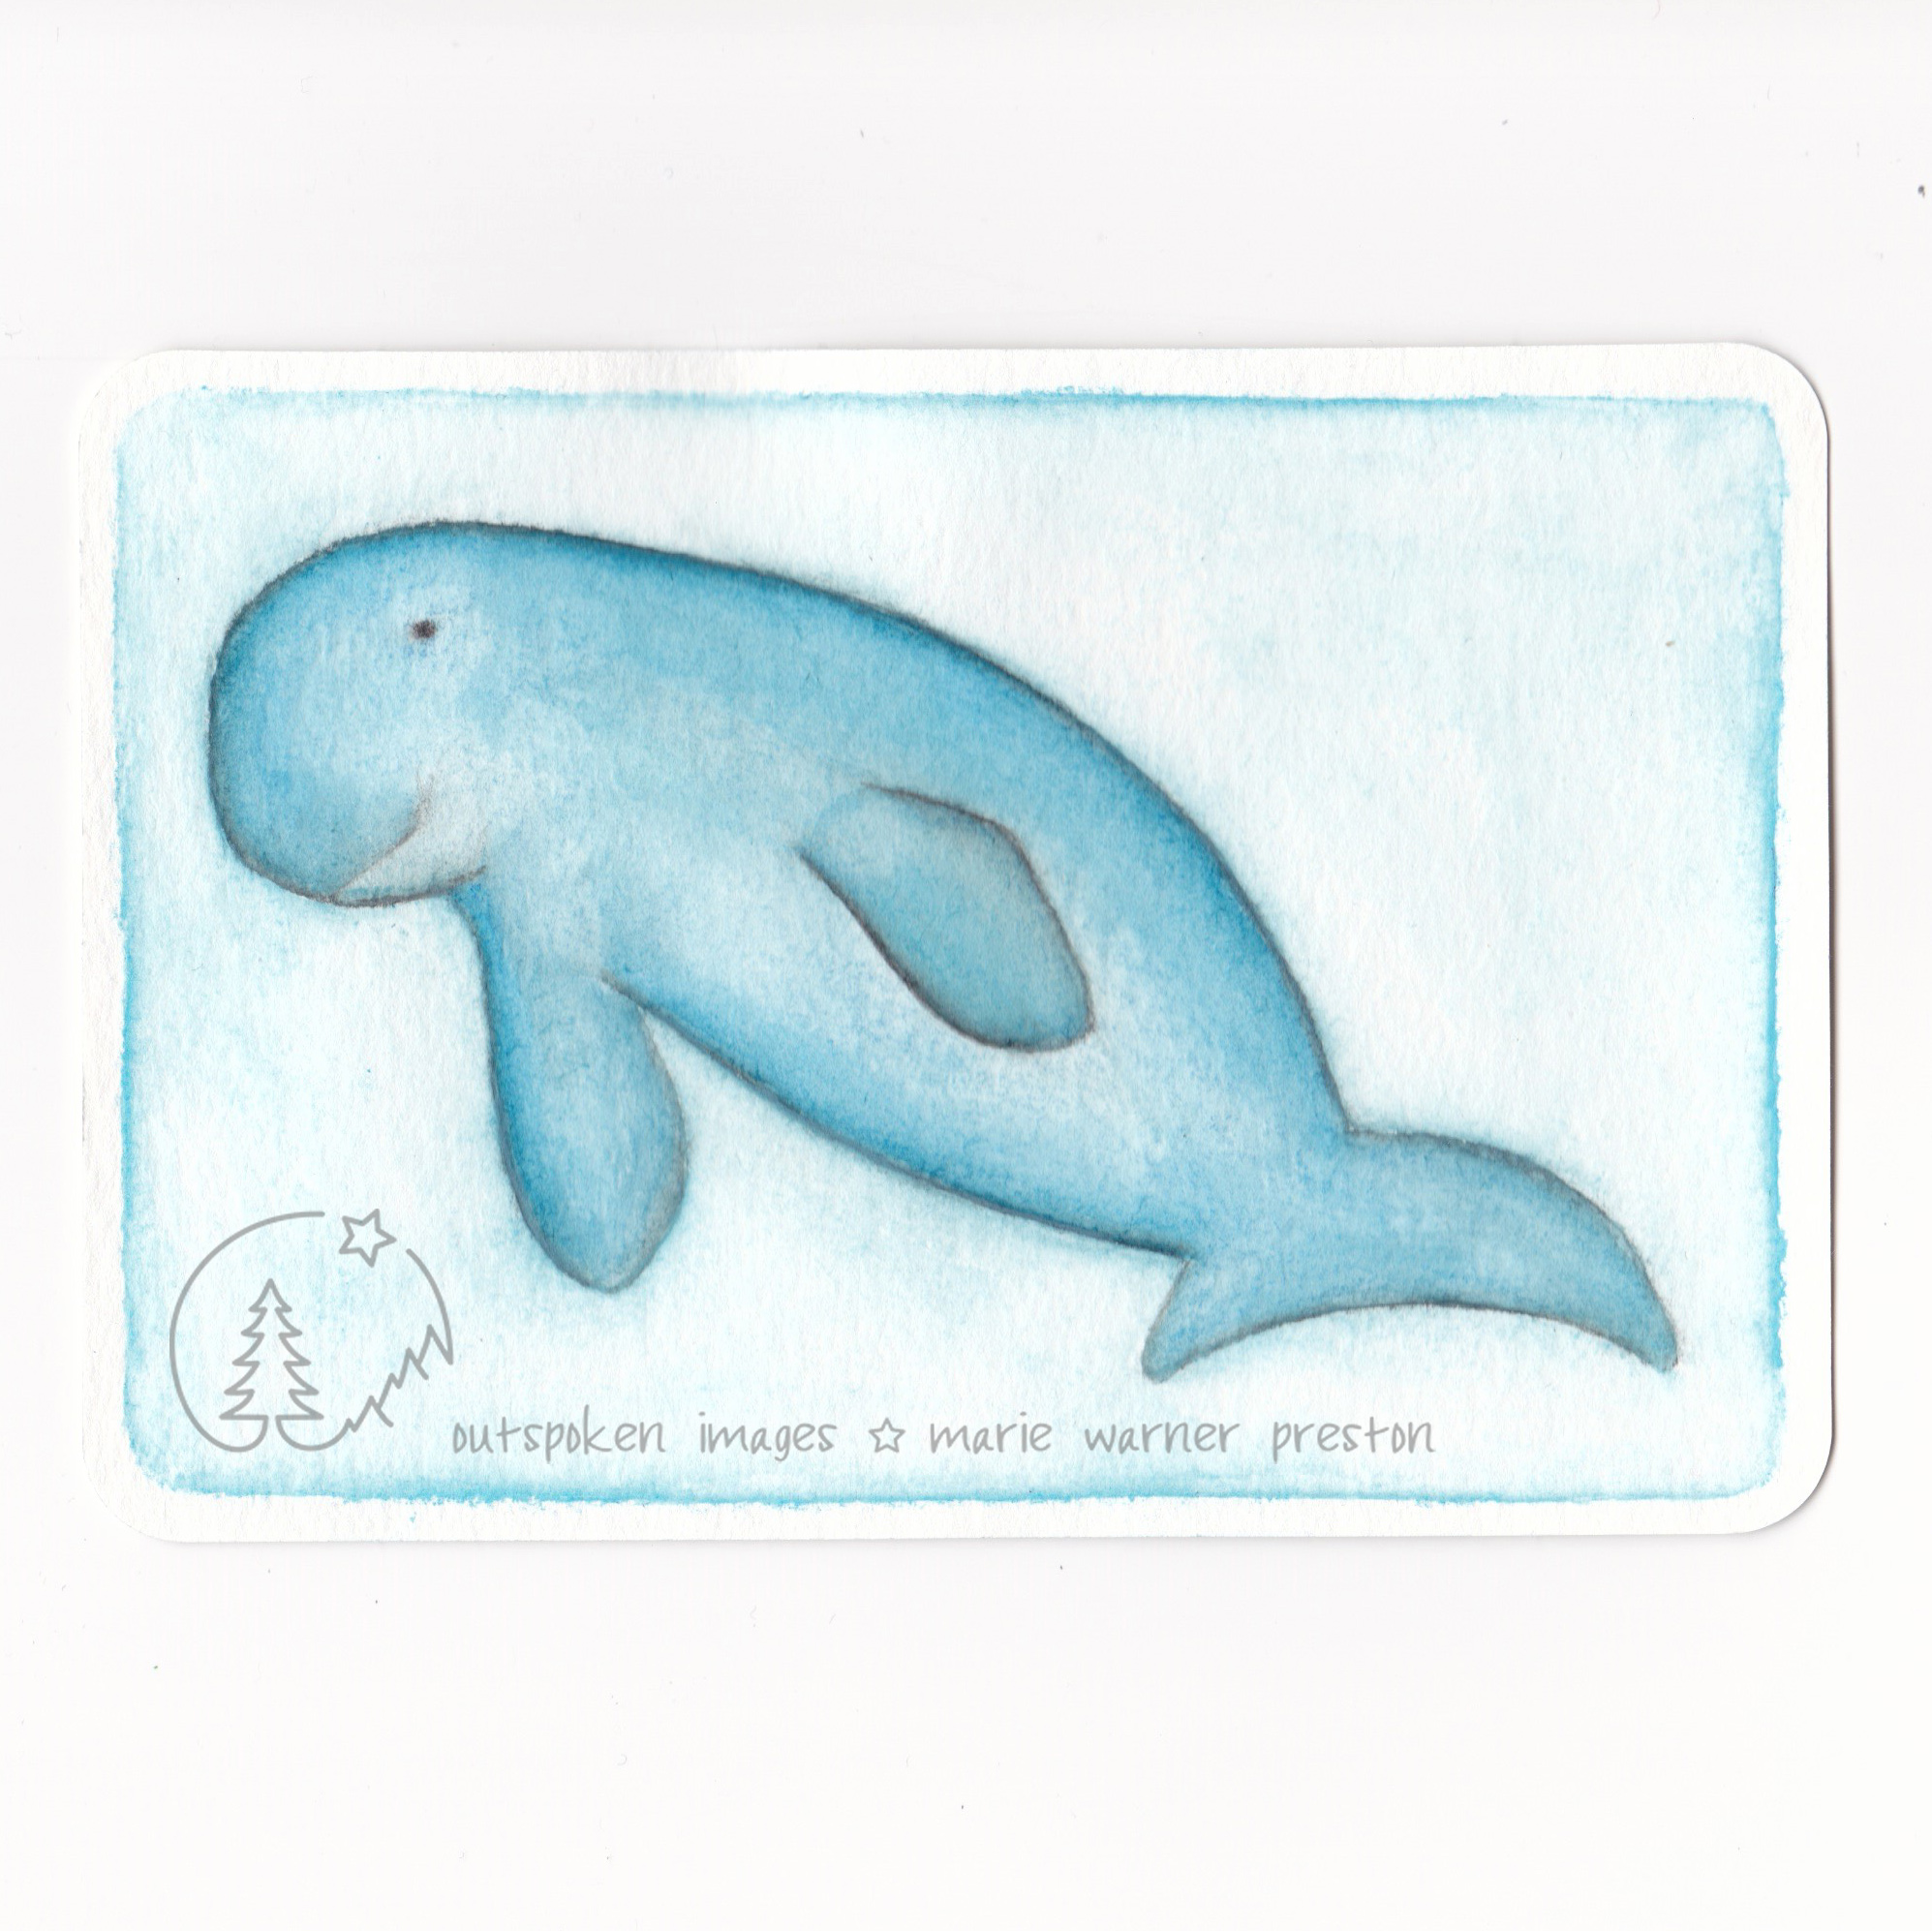 Dugong (watercolour) ©2021 Outspoken Images by Marie Warner Preston